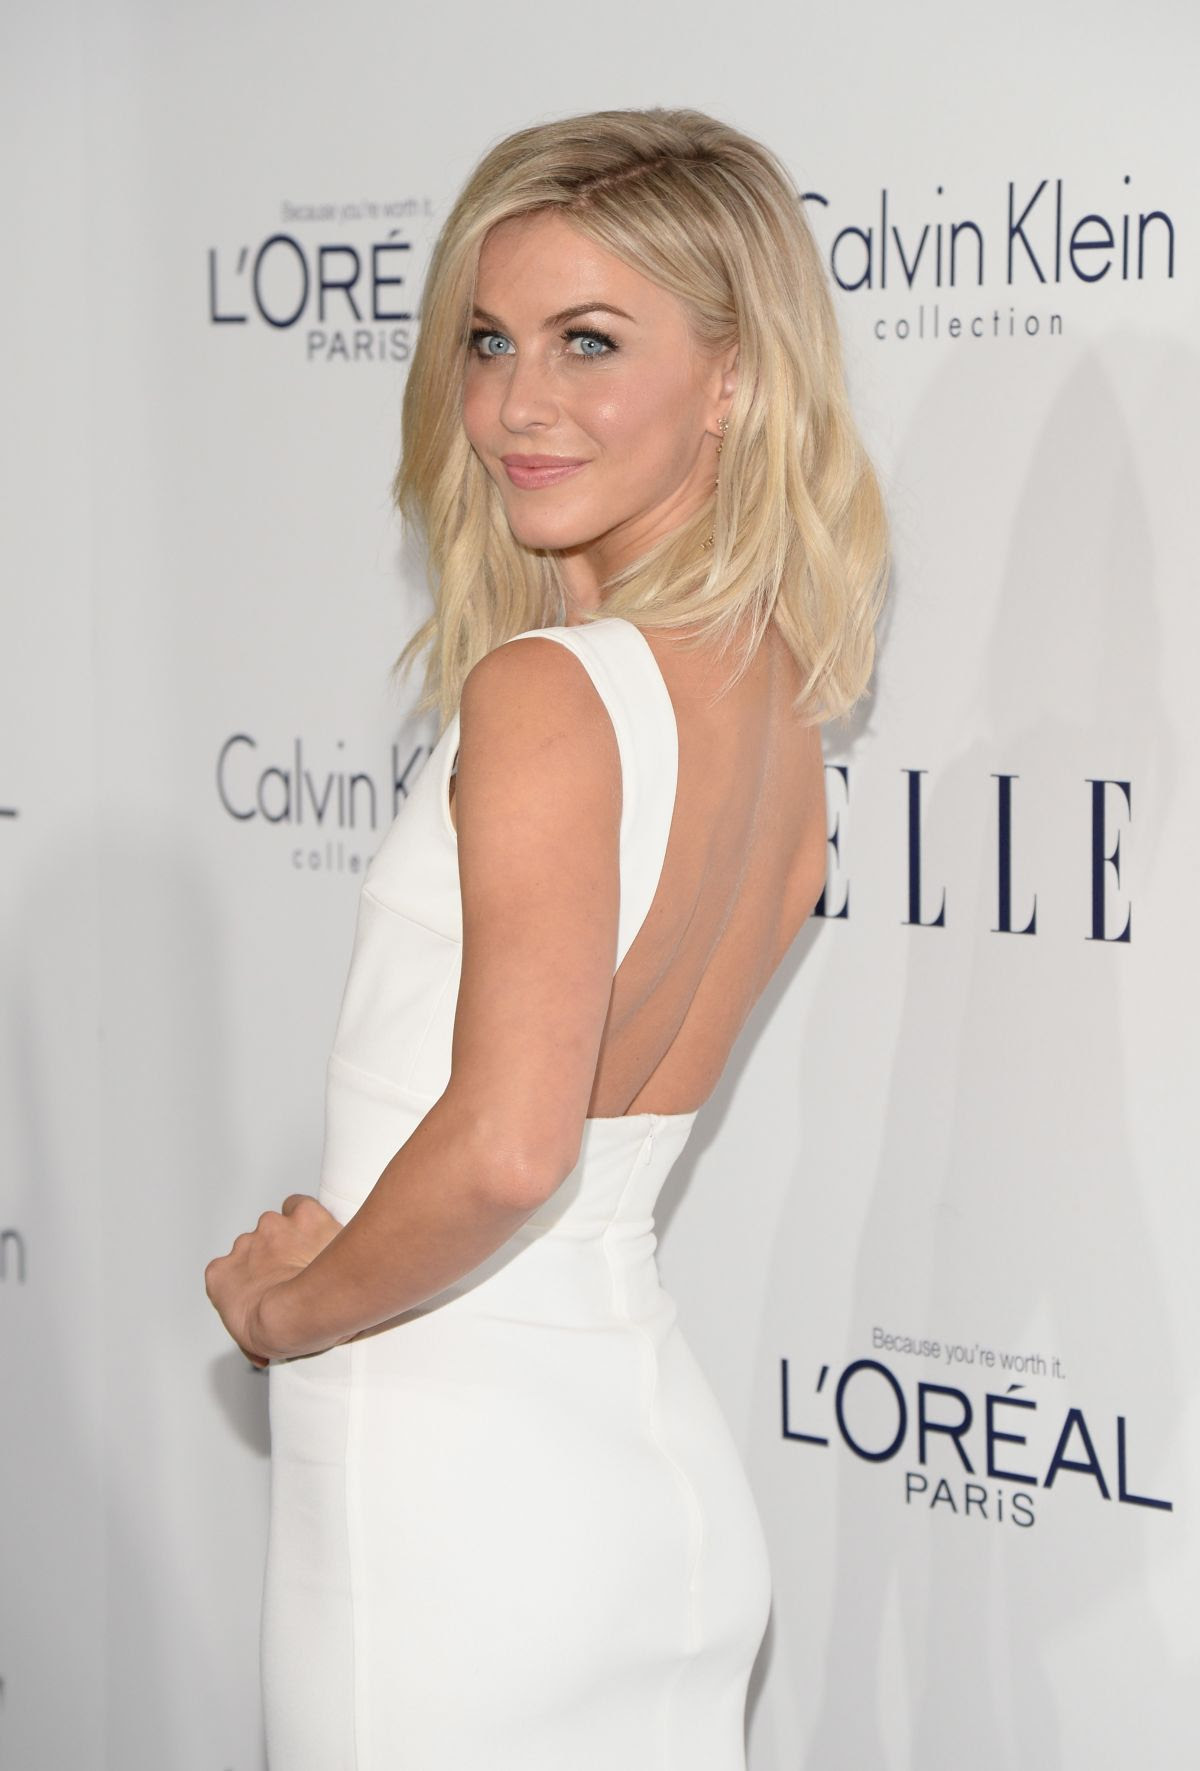 JULIANNE HOUGH at 2015 Elle Women in Hollywood Awards in Los Angeles 10/19/2015